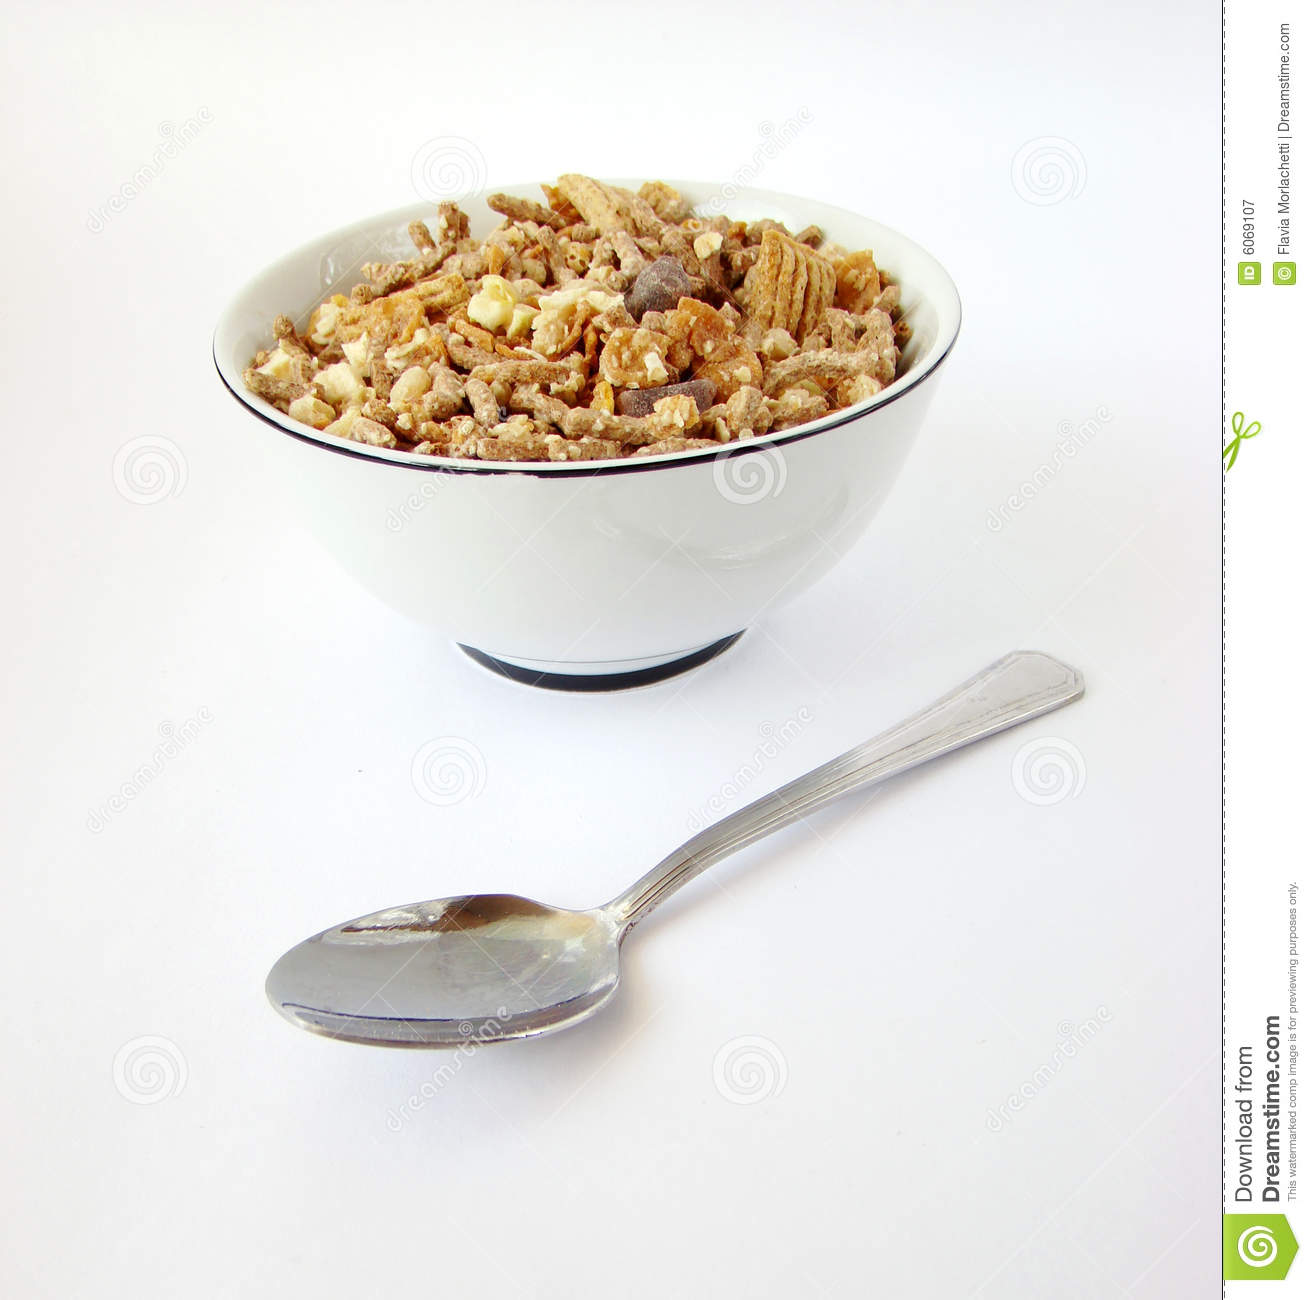 Cup Of Cereals Stock Image. Image Of Diet, Cuisine